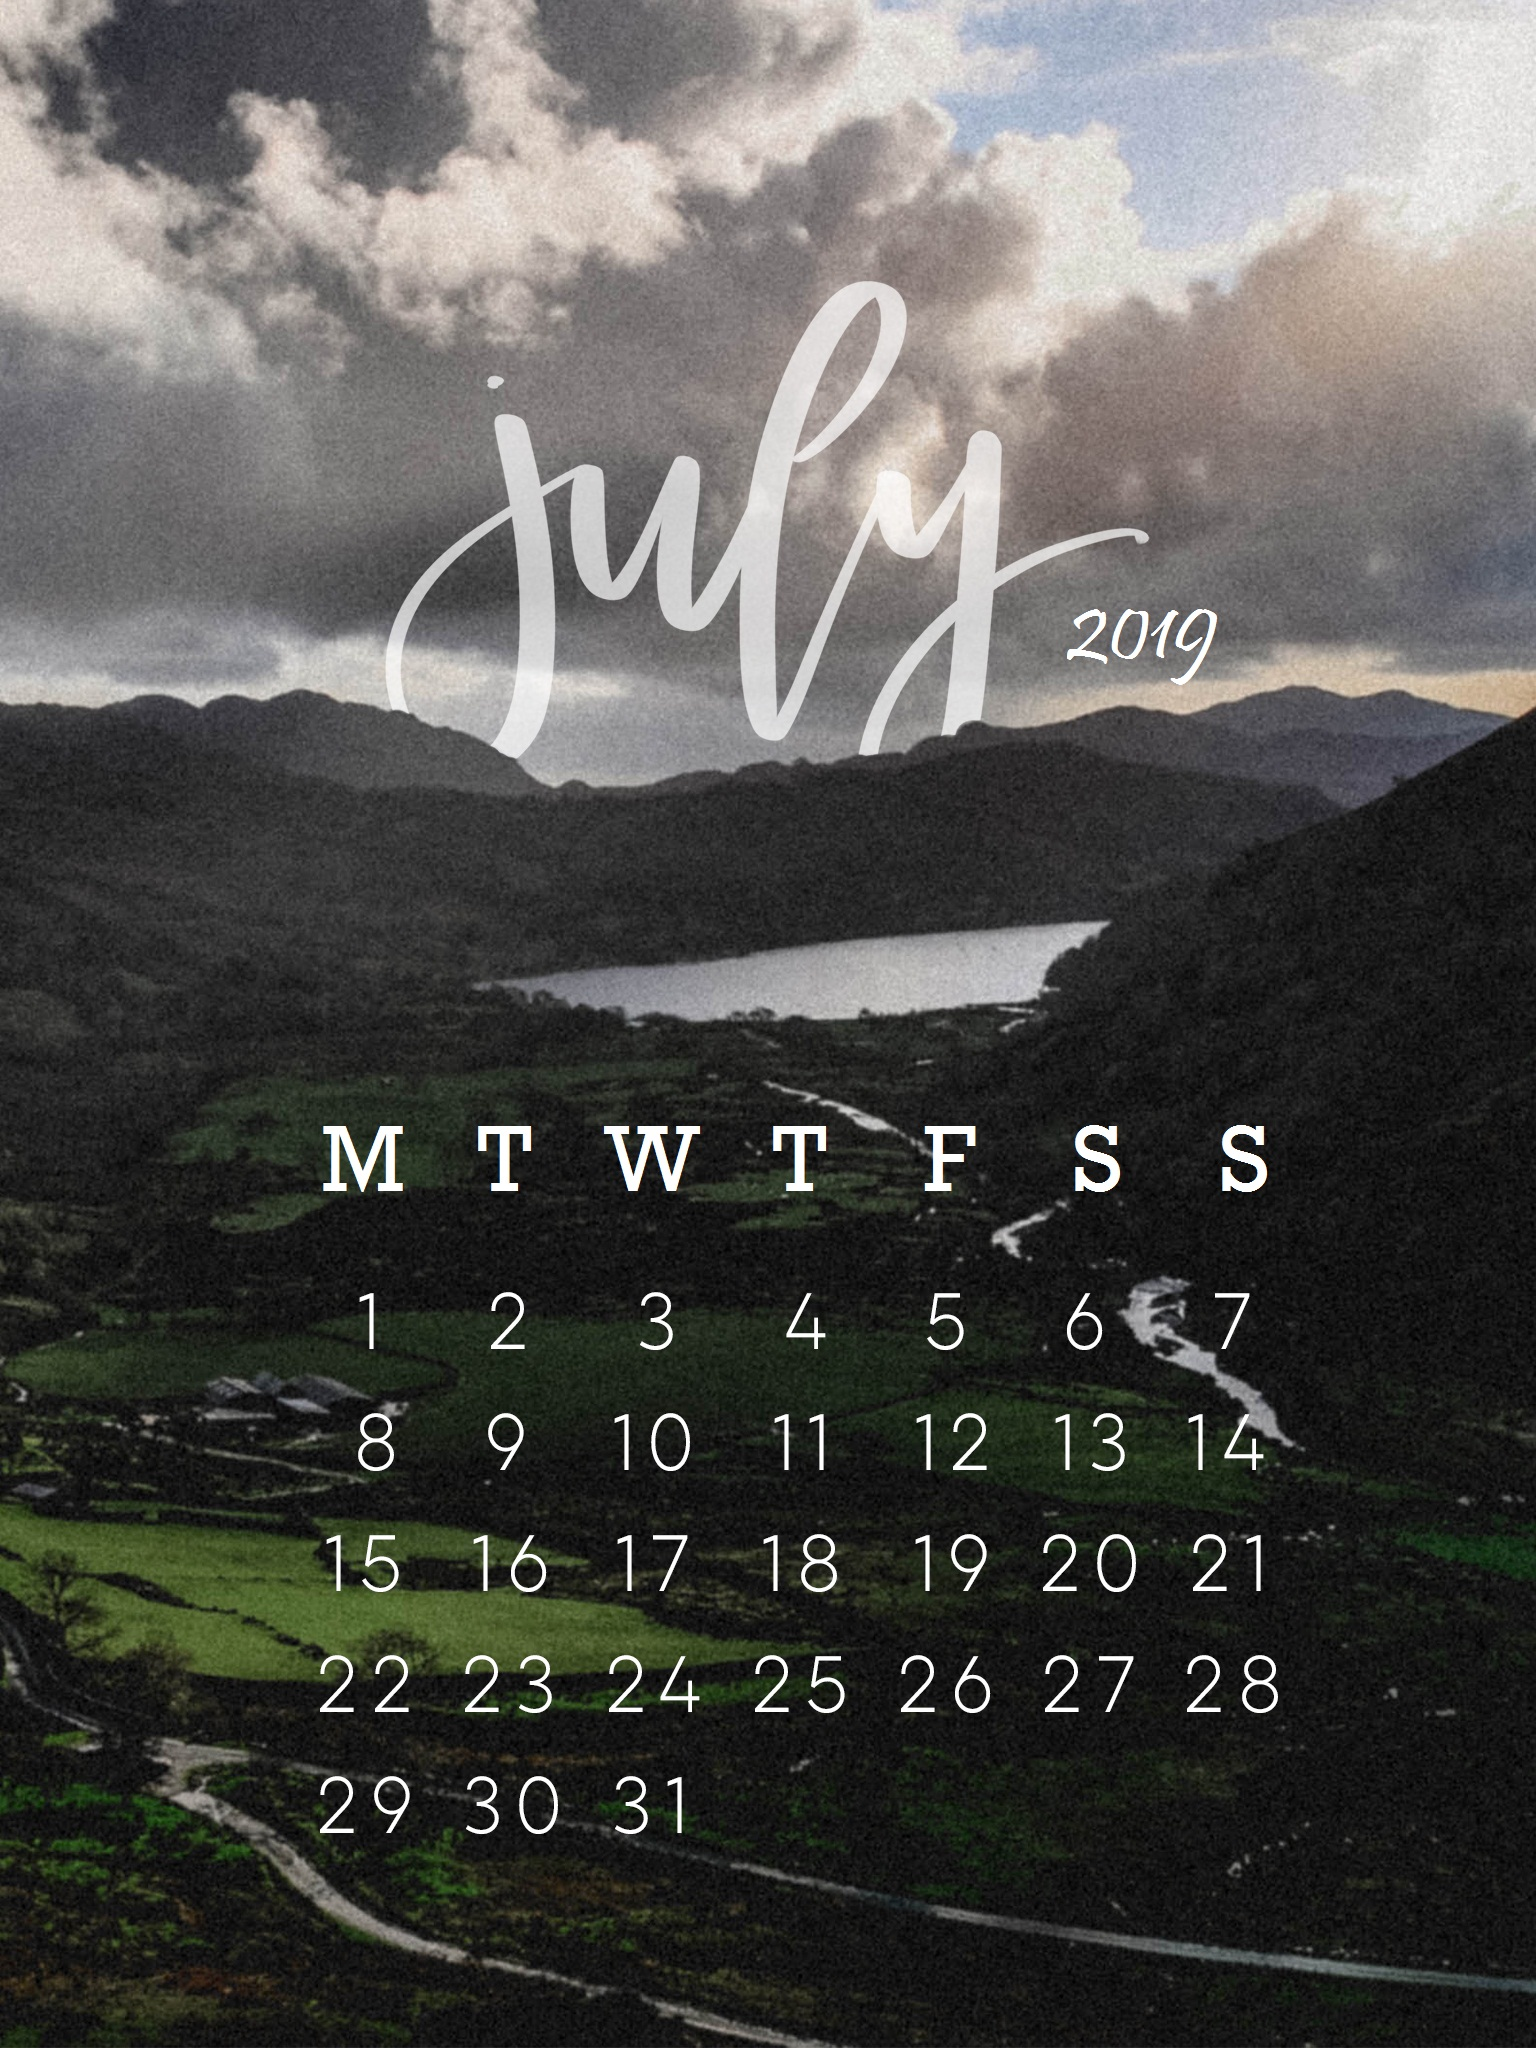 Mountains Scene July 2019 Iphone Wallpaper Calendar - June 2019 Iphone Background , HD Wallpaper & Backgrounds